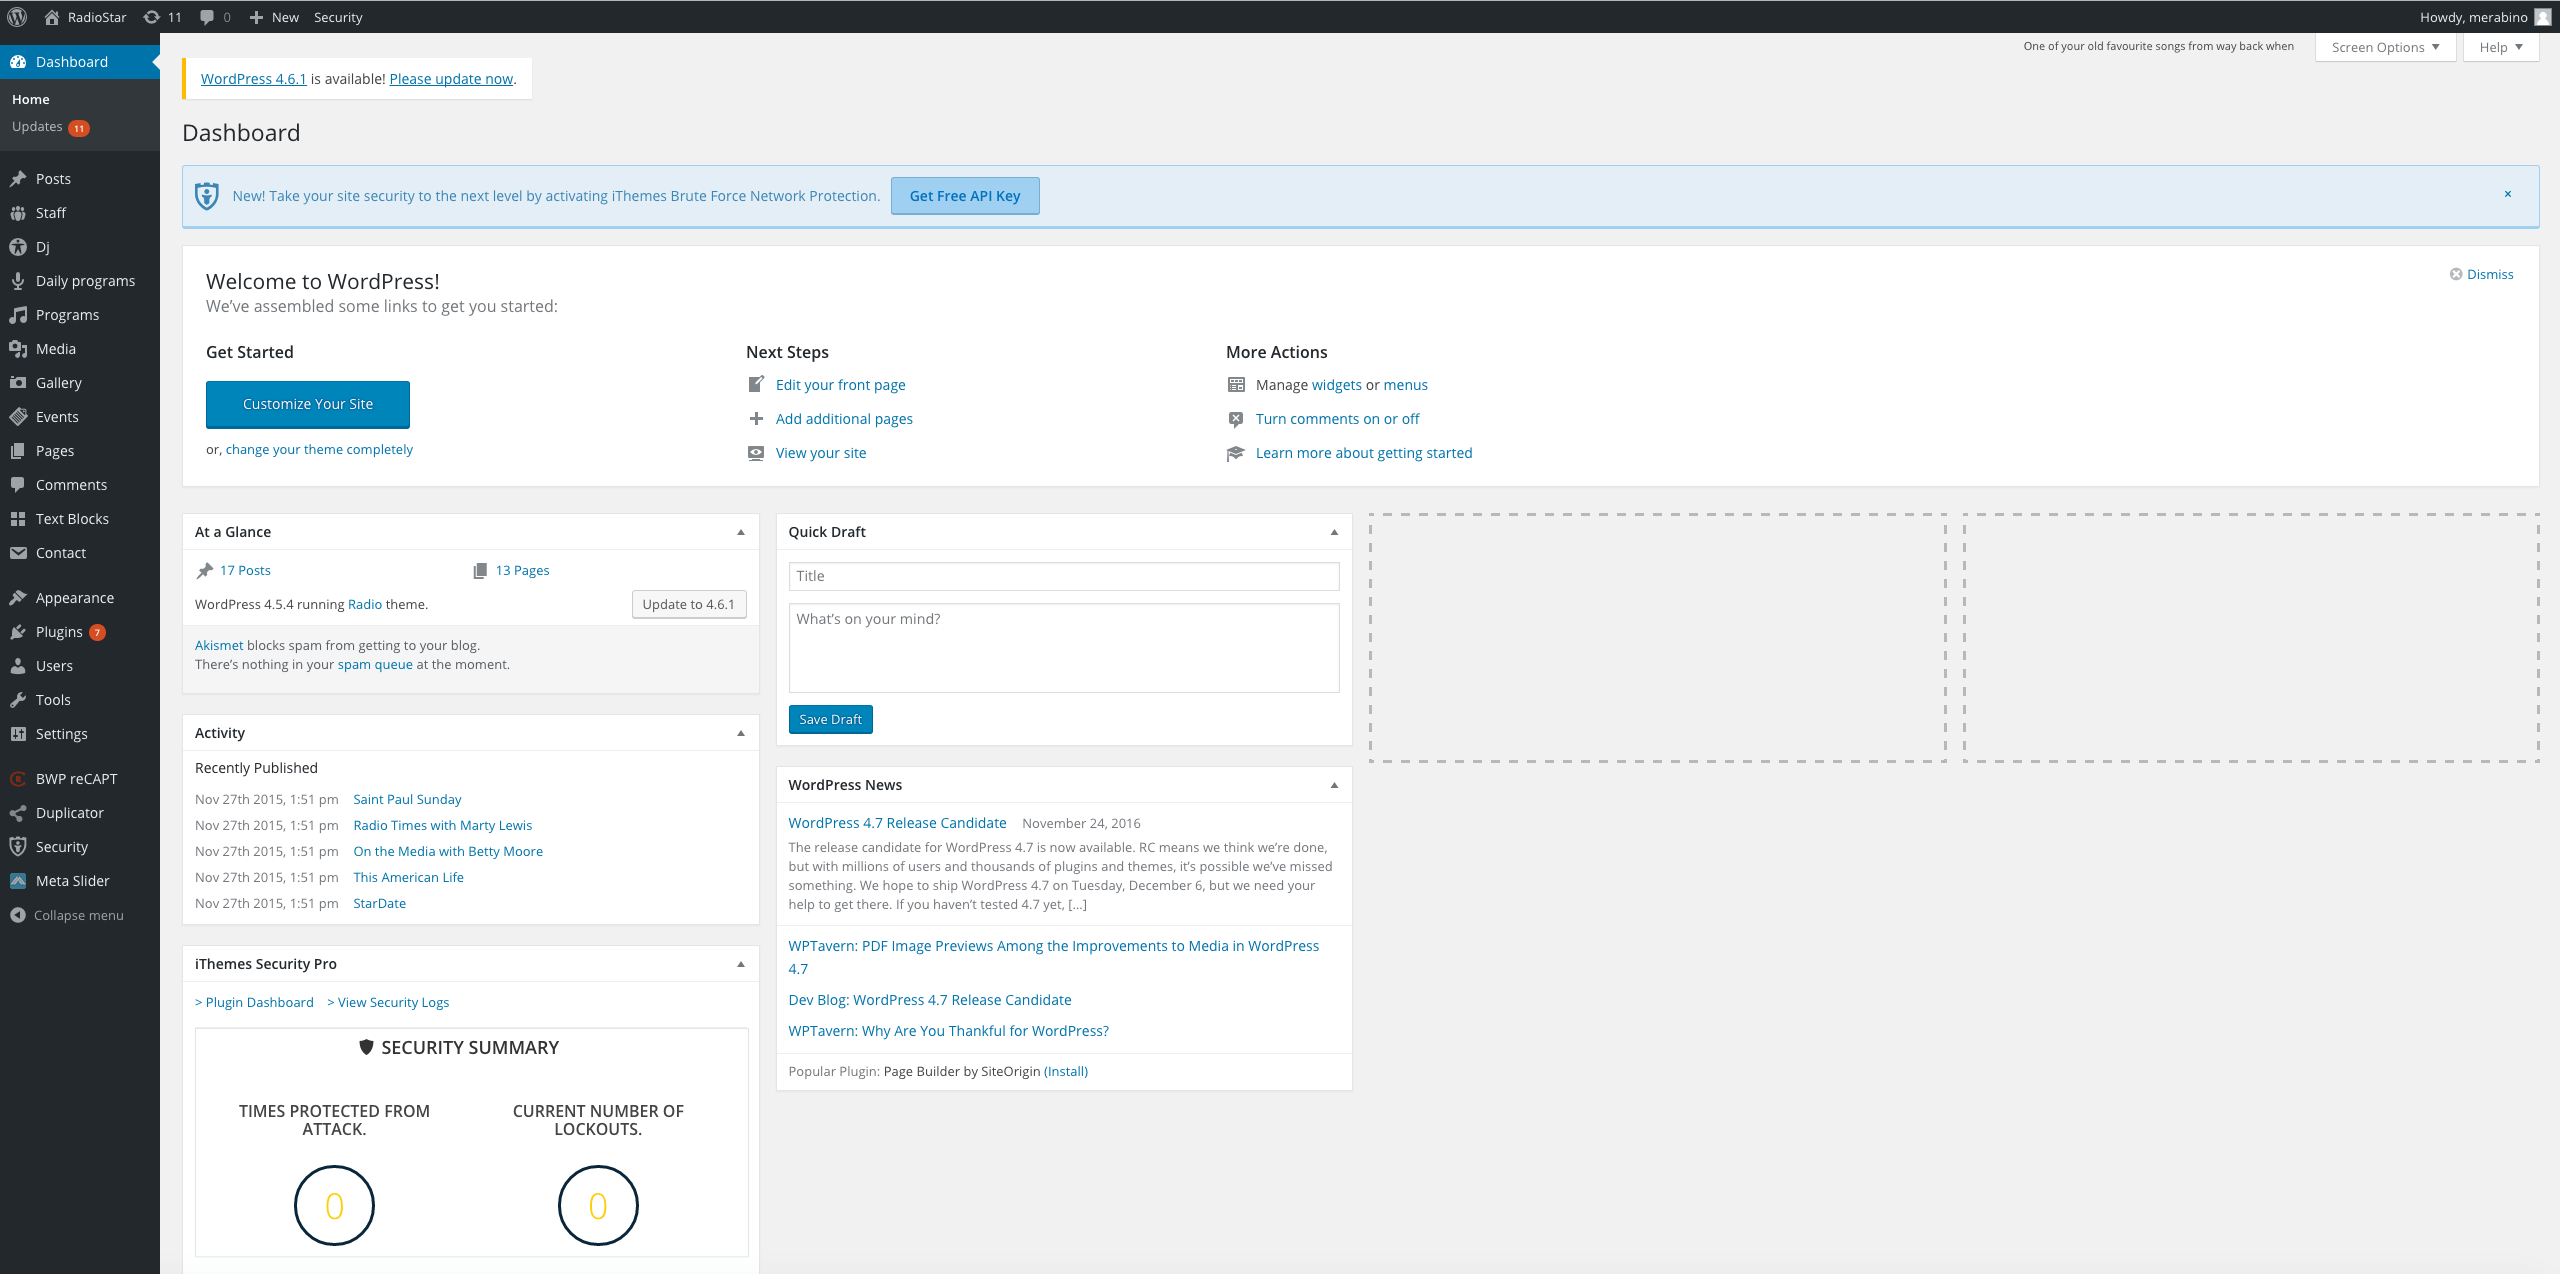 wordpress administrator's page